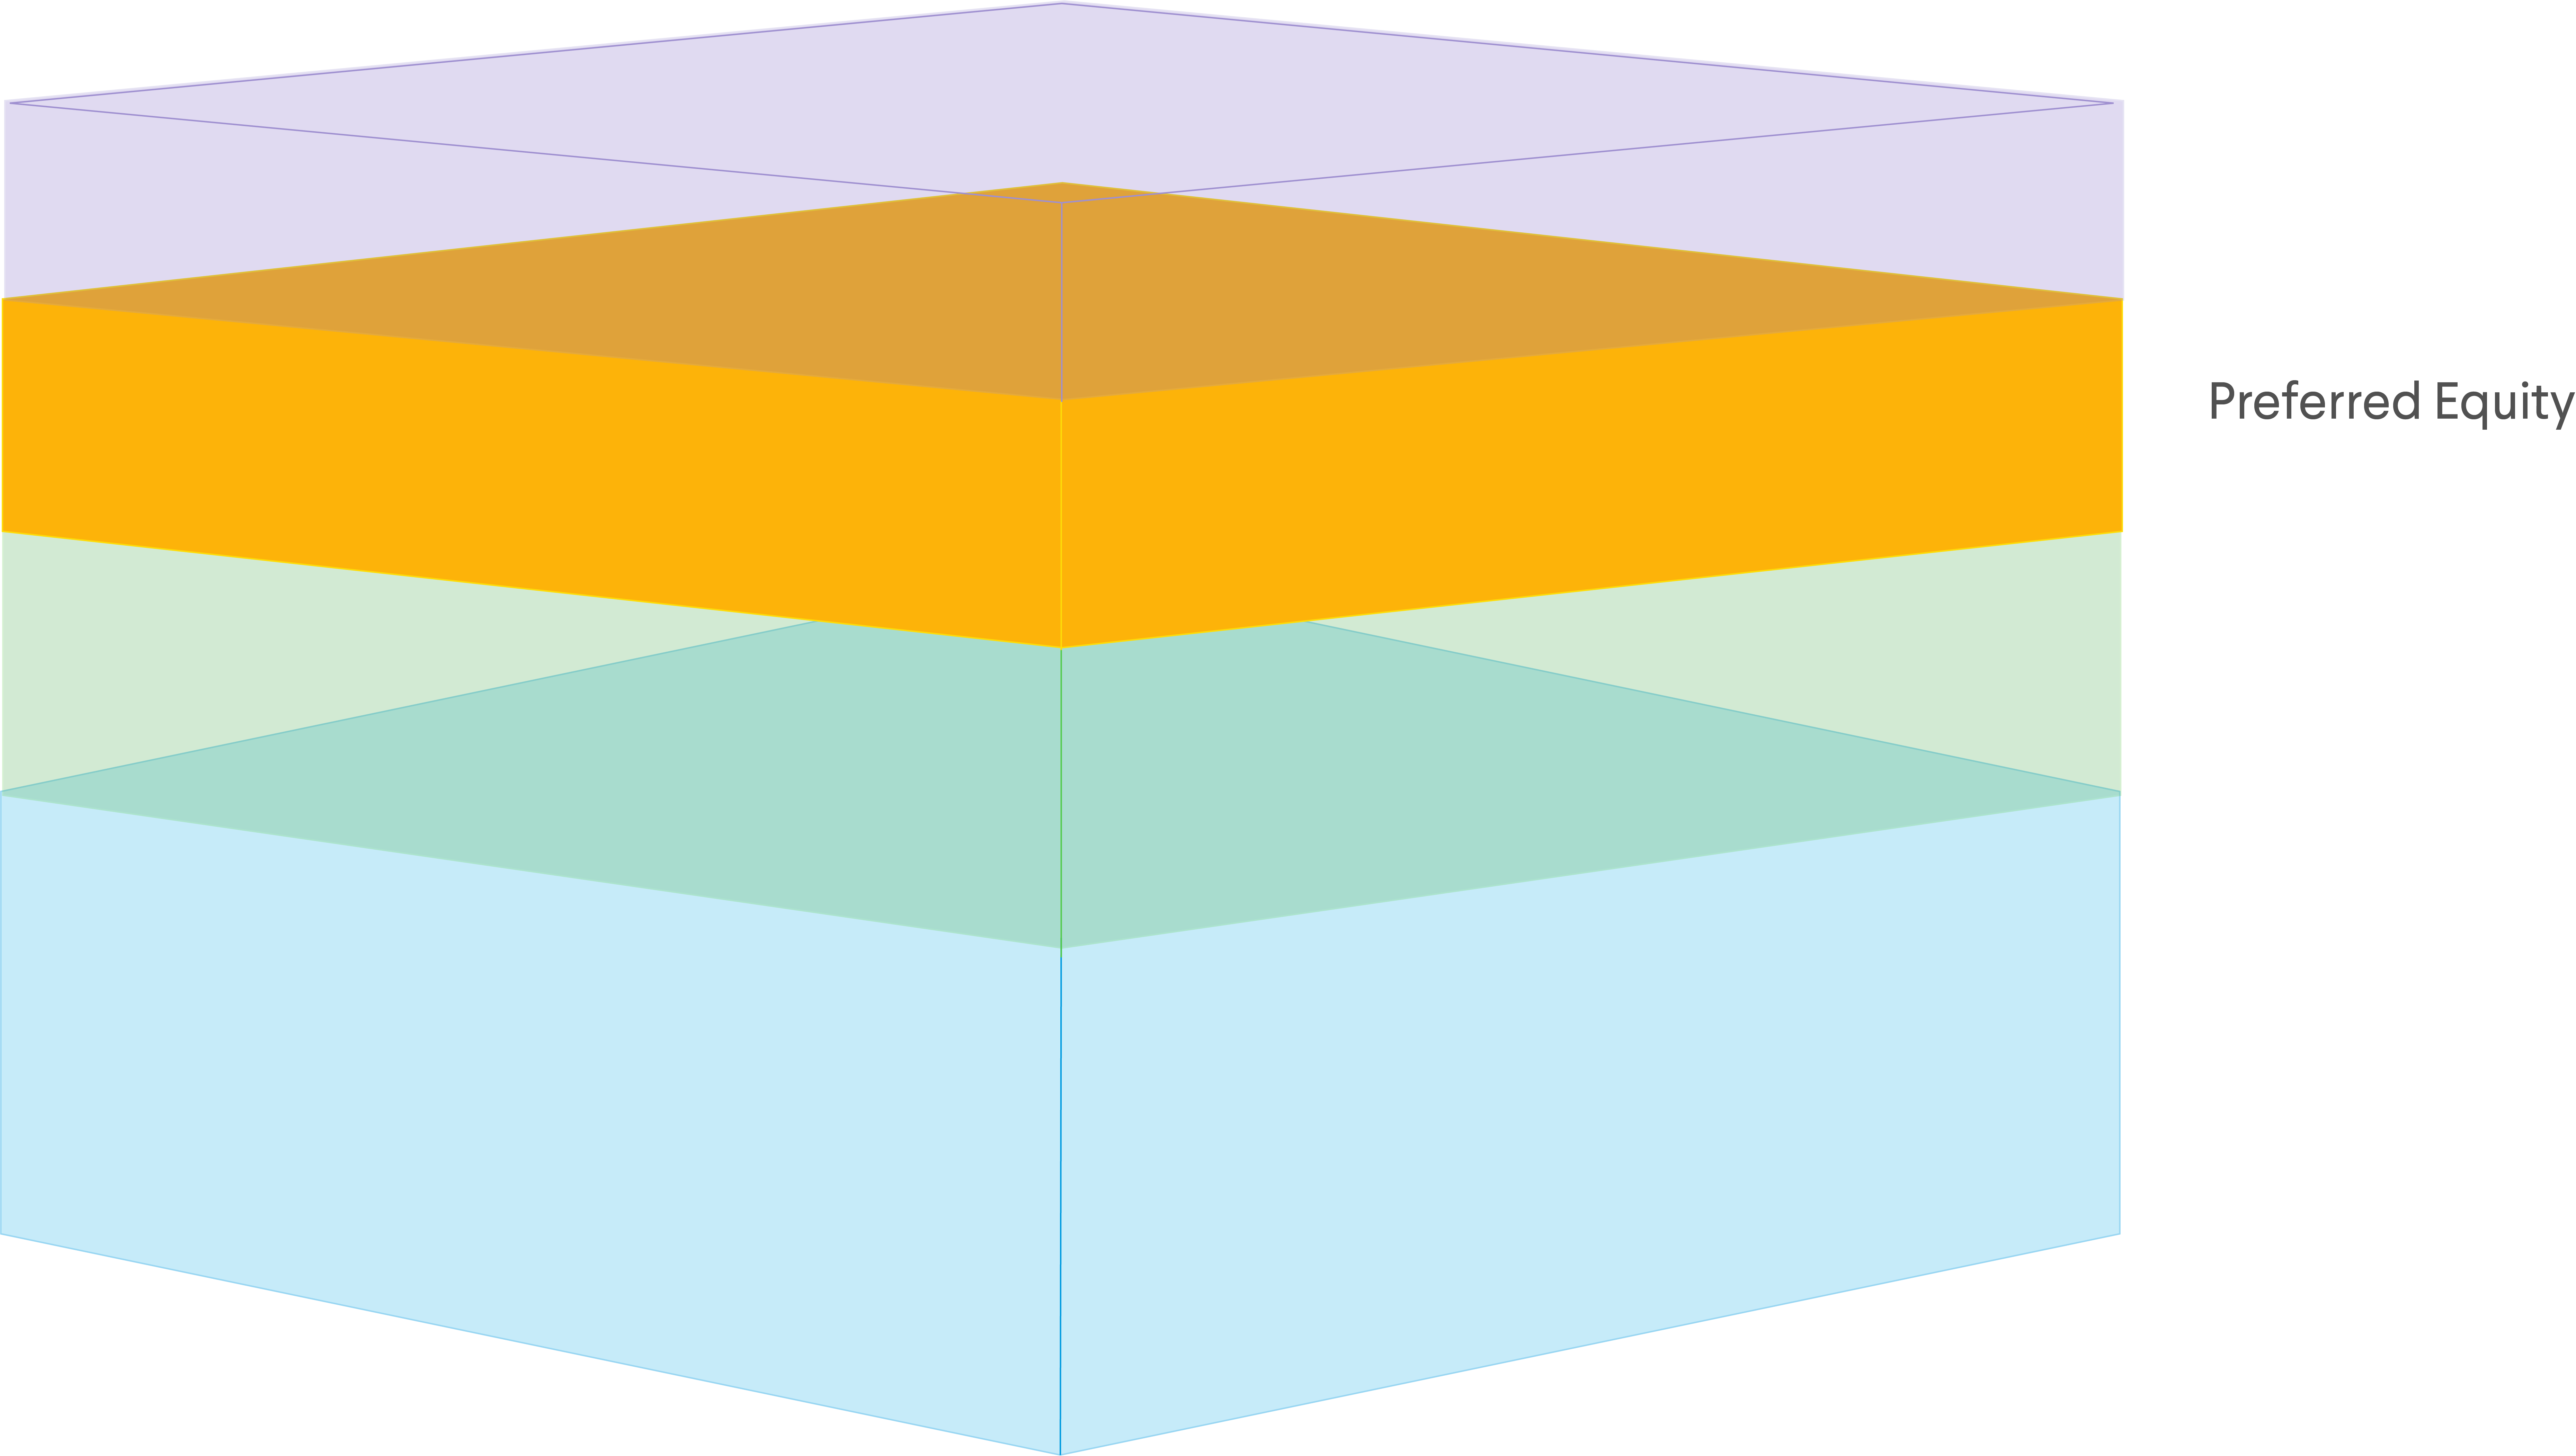 Preferred equity as portion of the capital stack